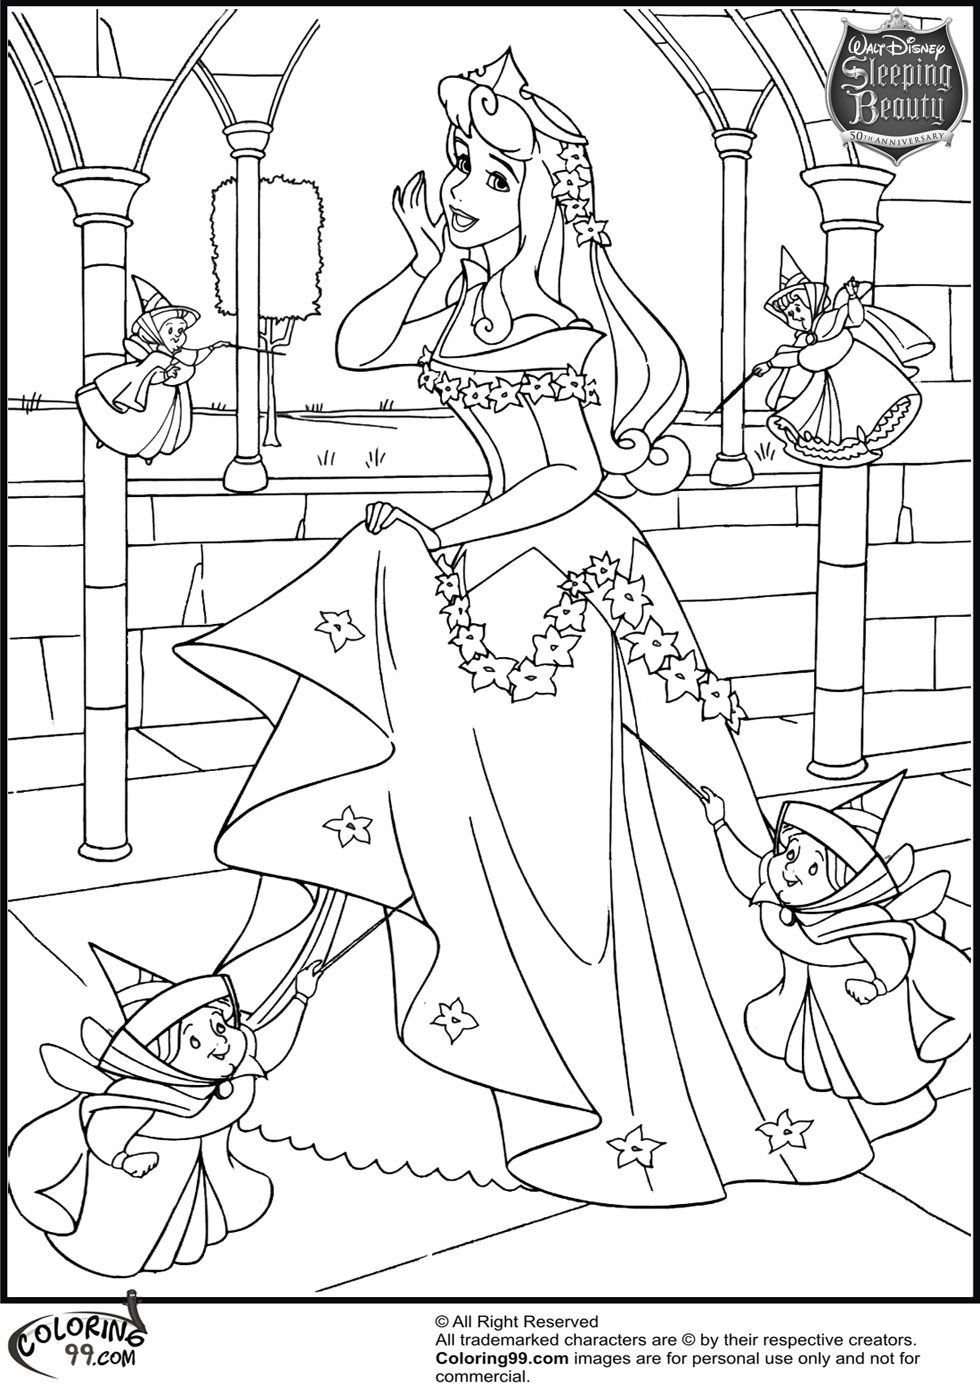 princess aurora pictures to color disney princess sleeping beauty aurora colouring sheets princess to pictures color aurora